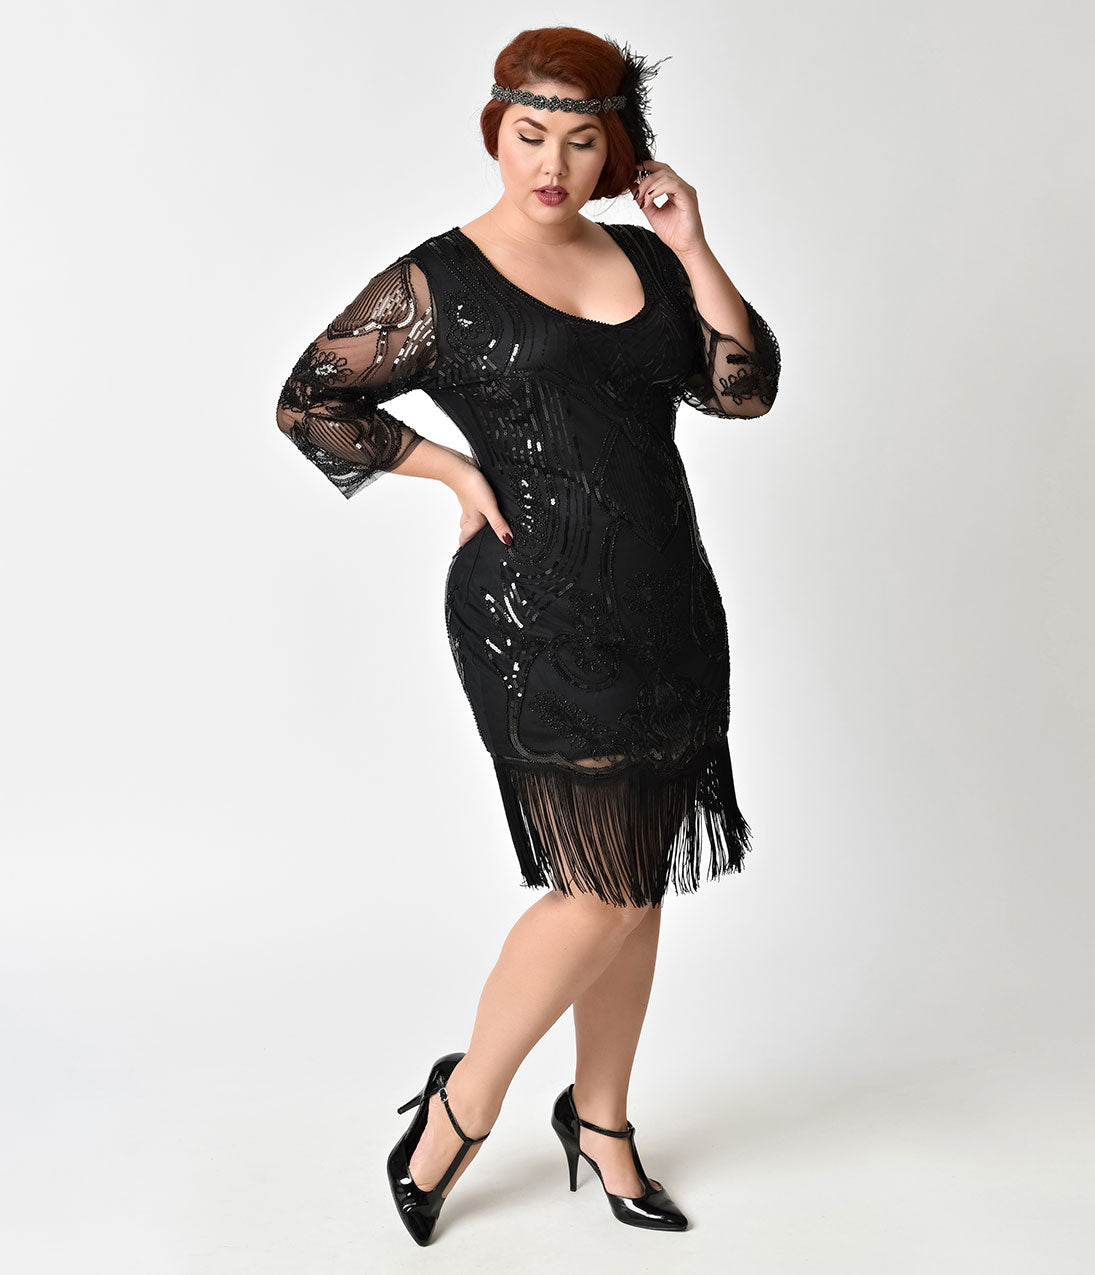 Vintage Look Plus Size Dresses